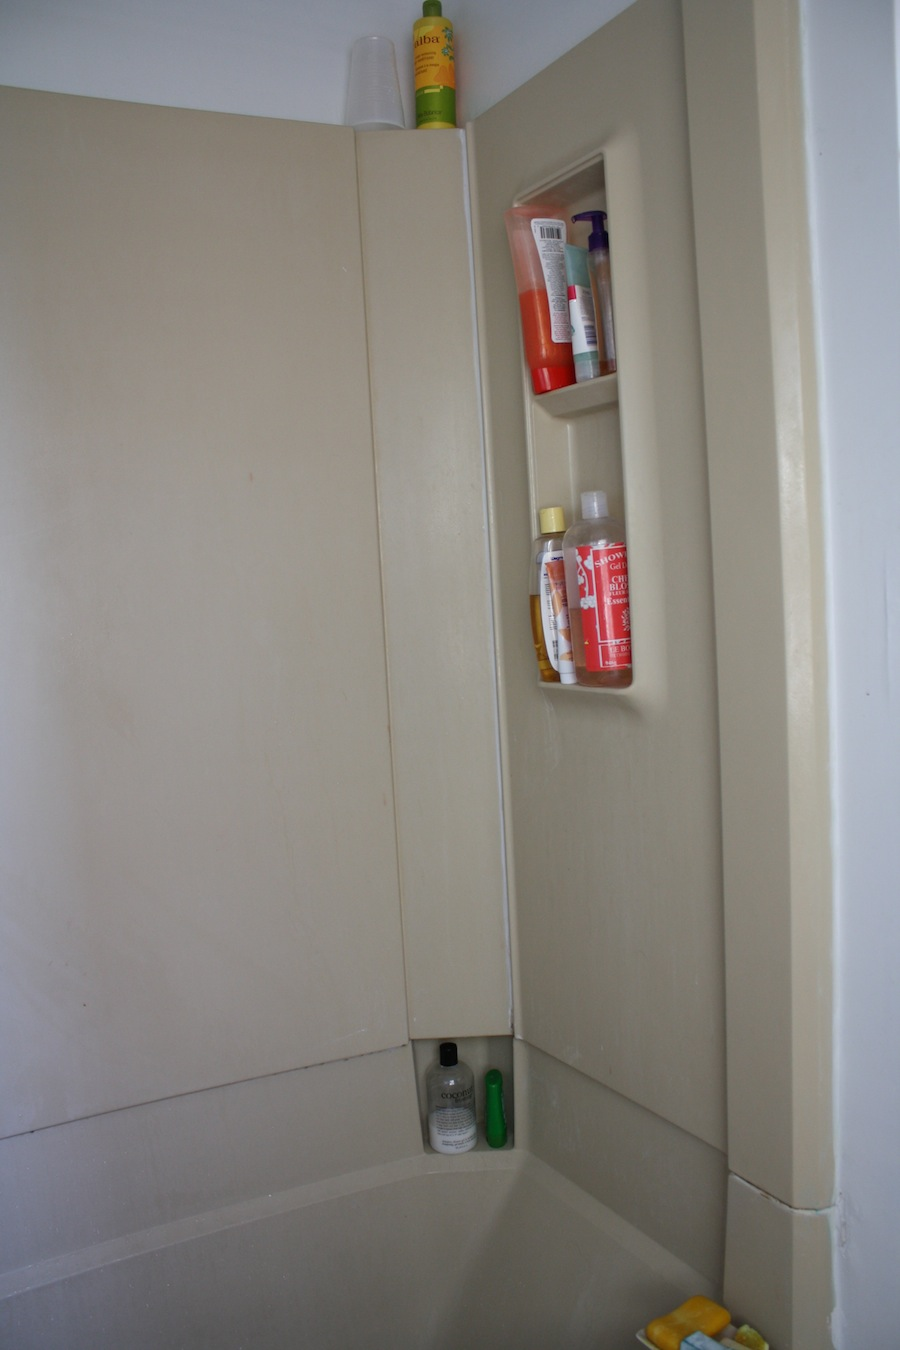 Tiny bathroom shelves that need to be bigger.